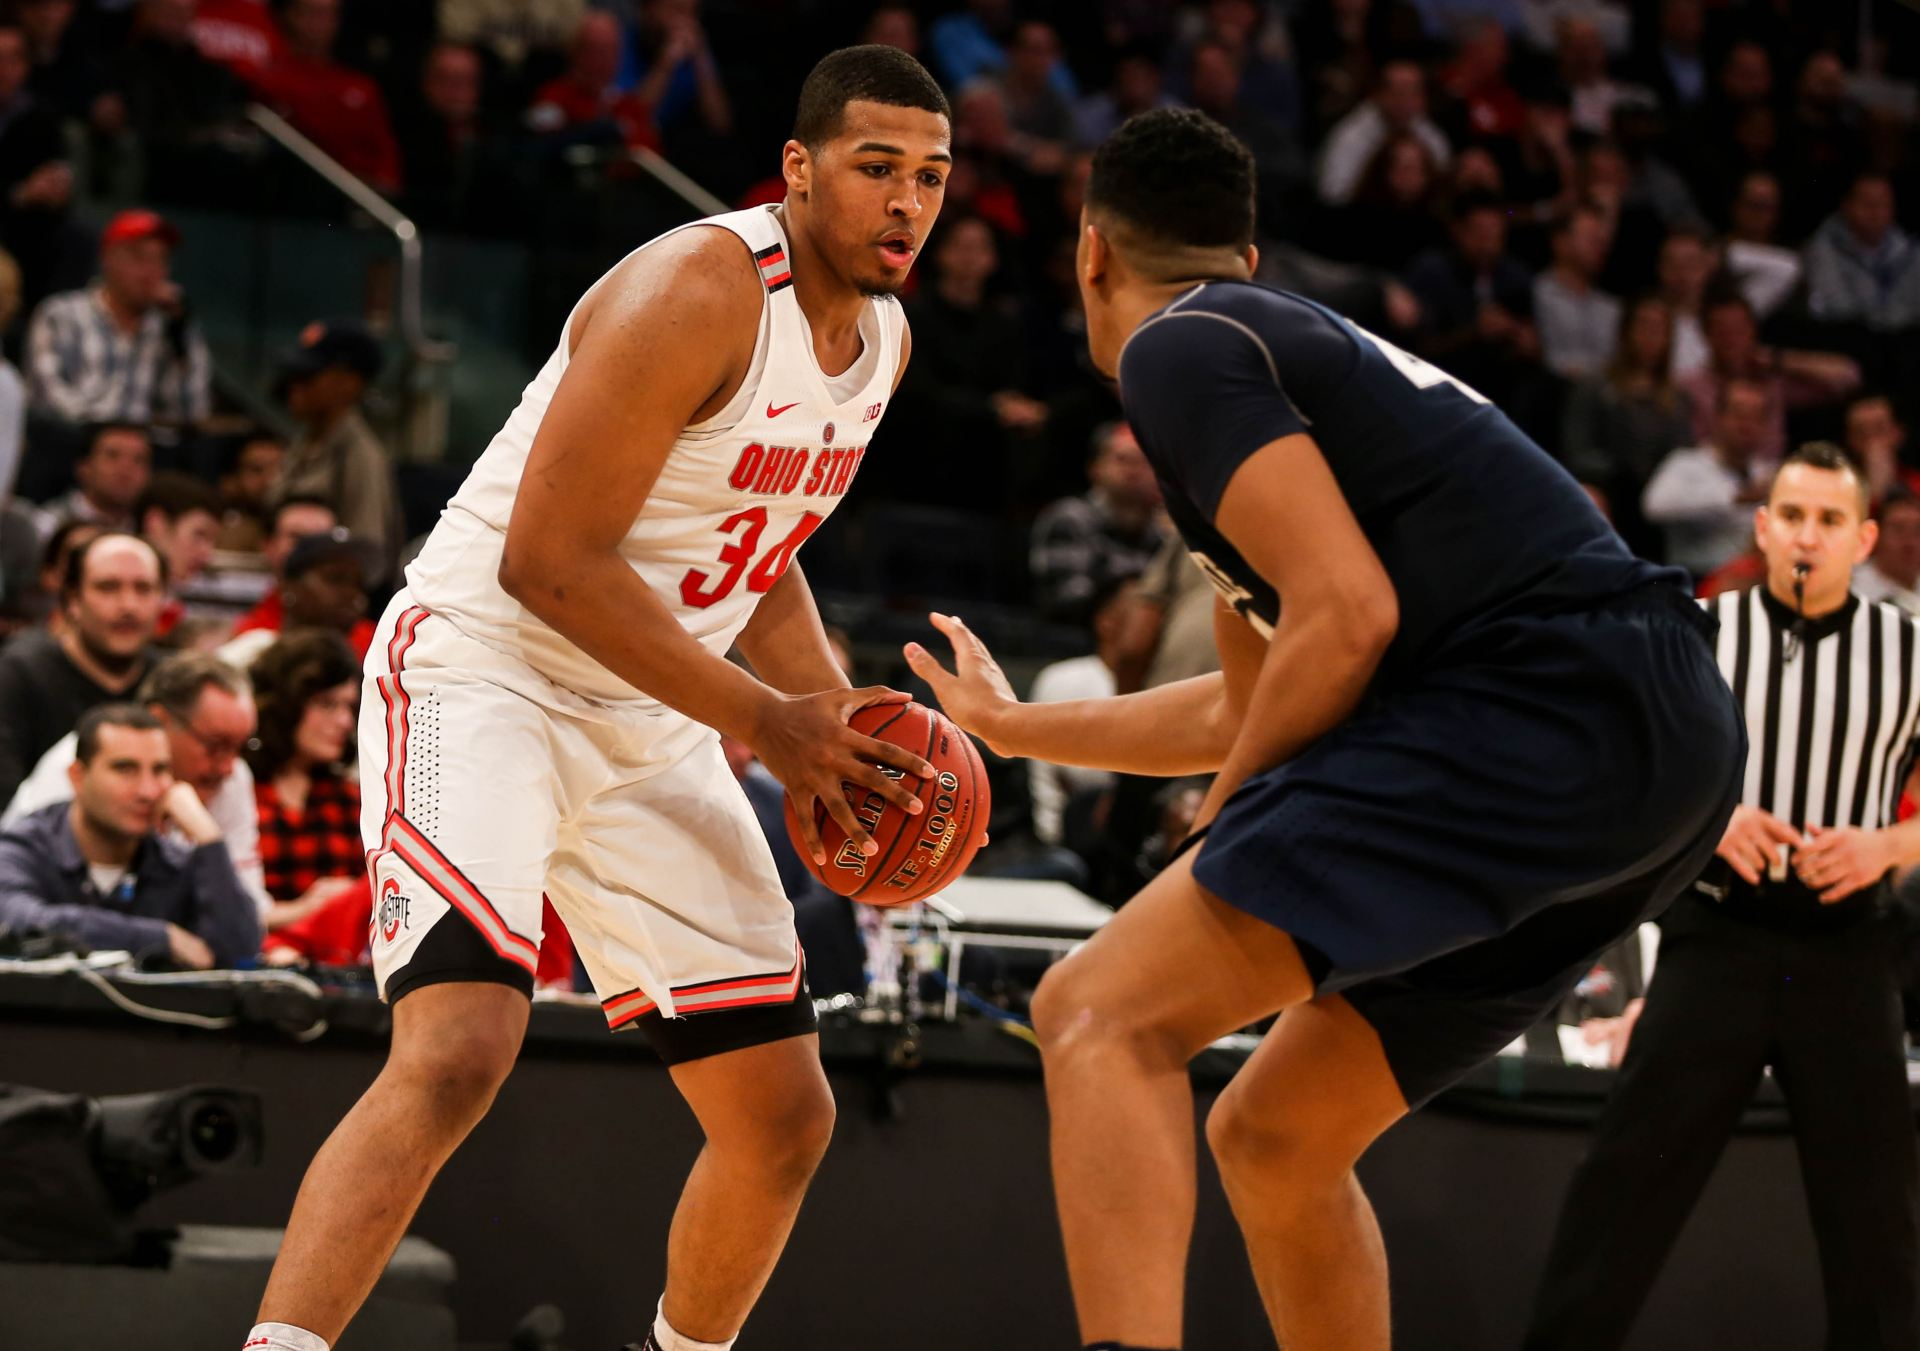 Men's Basketball: No. 5 Ohio State looks to avoid upset at hands of No. 12 South Dakota State